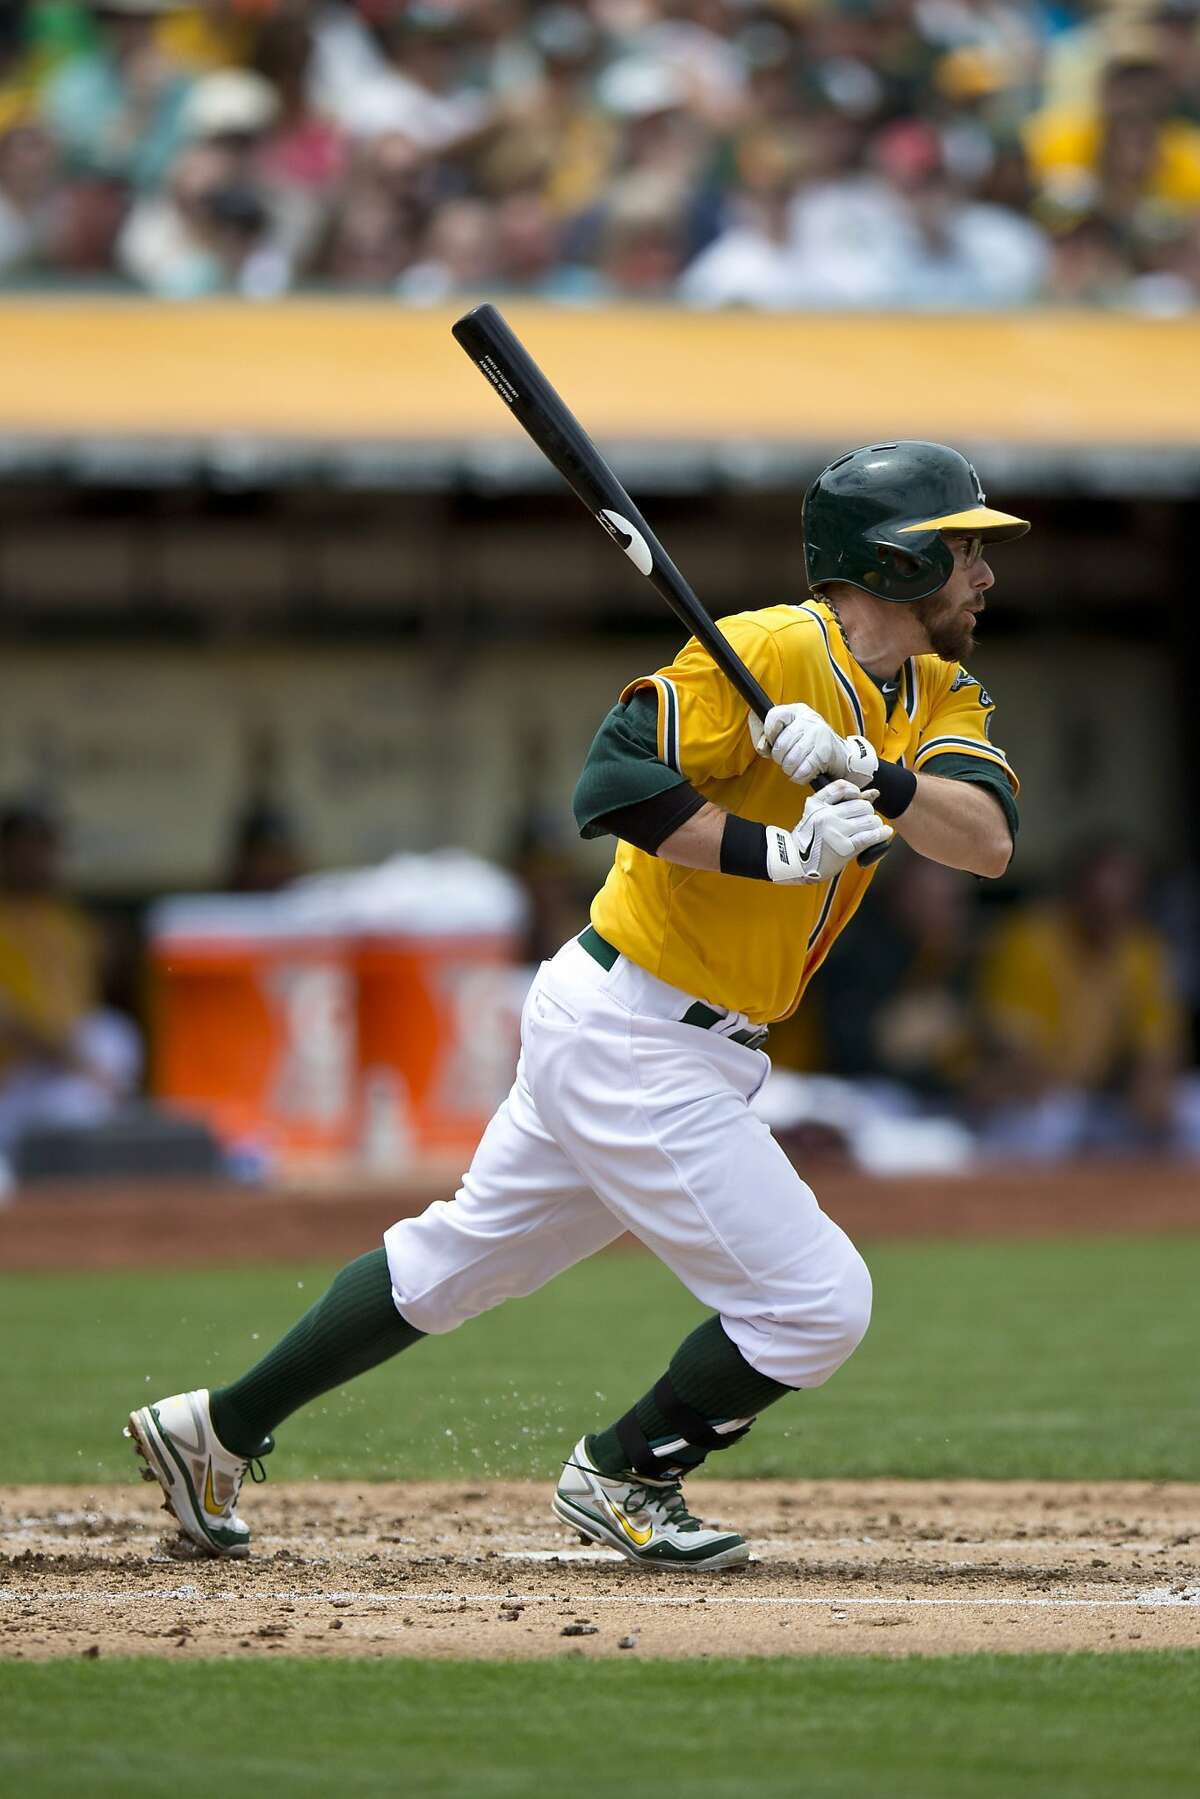 OAKLAND, CA - JULY 20: Eric Sogard #28 of the Oakland Athletics hits a single against the Baltimore Orioles during the second inning at O.co Coliseum on July 20, 2014 in Oakland, California. The Oakland Athletics defeated the Baltimore Orioles 10-2. (Photo by Jason O. Watson/Getty Images)